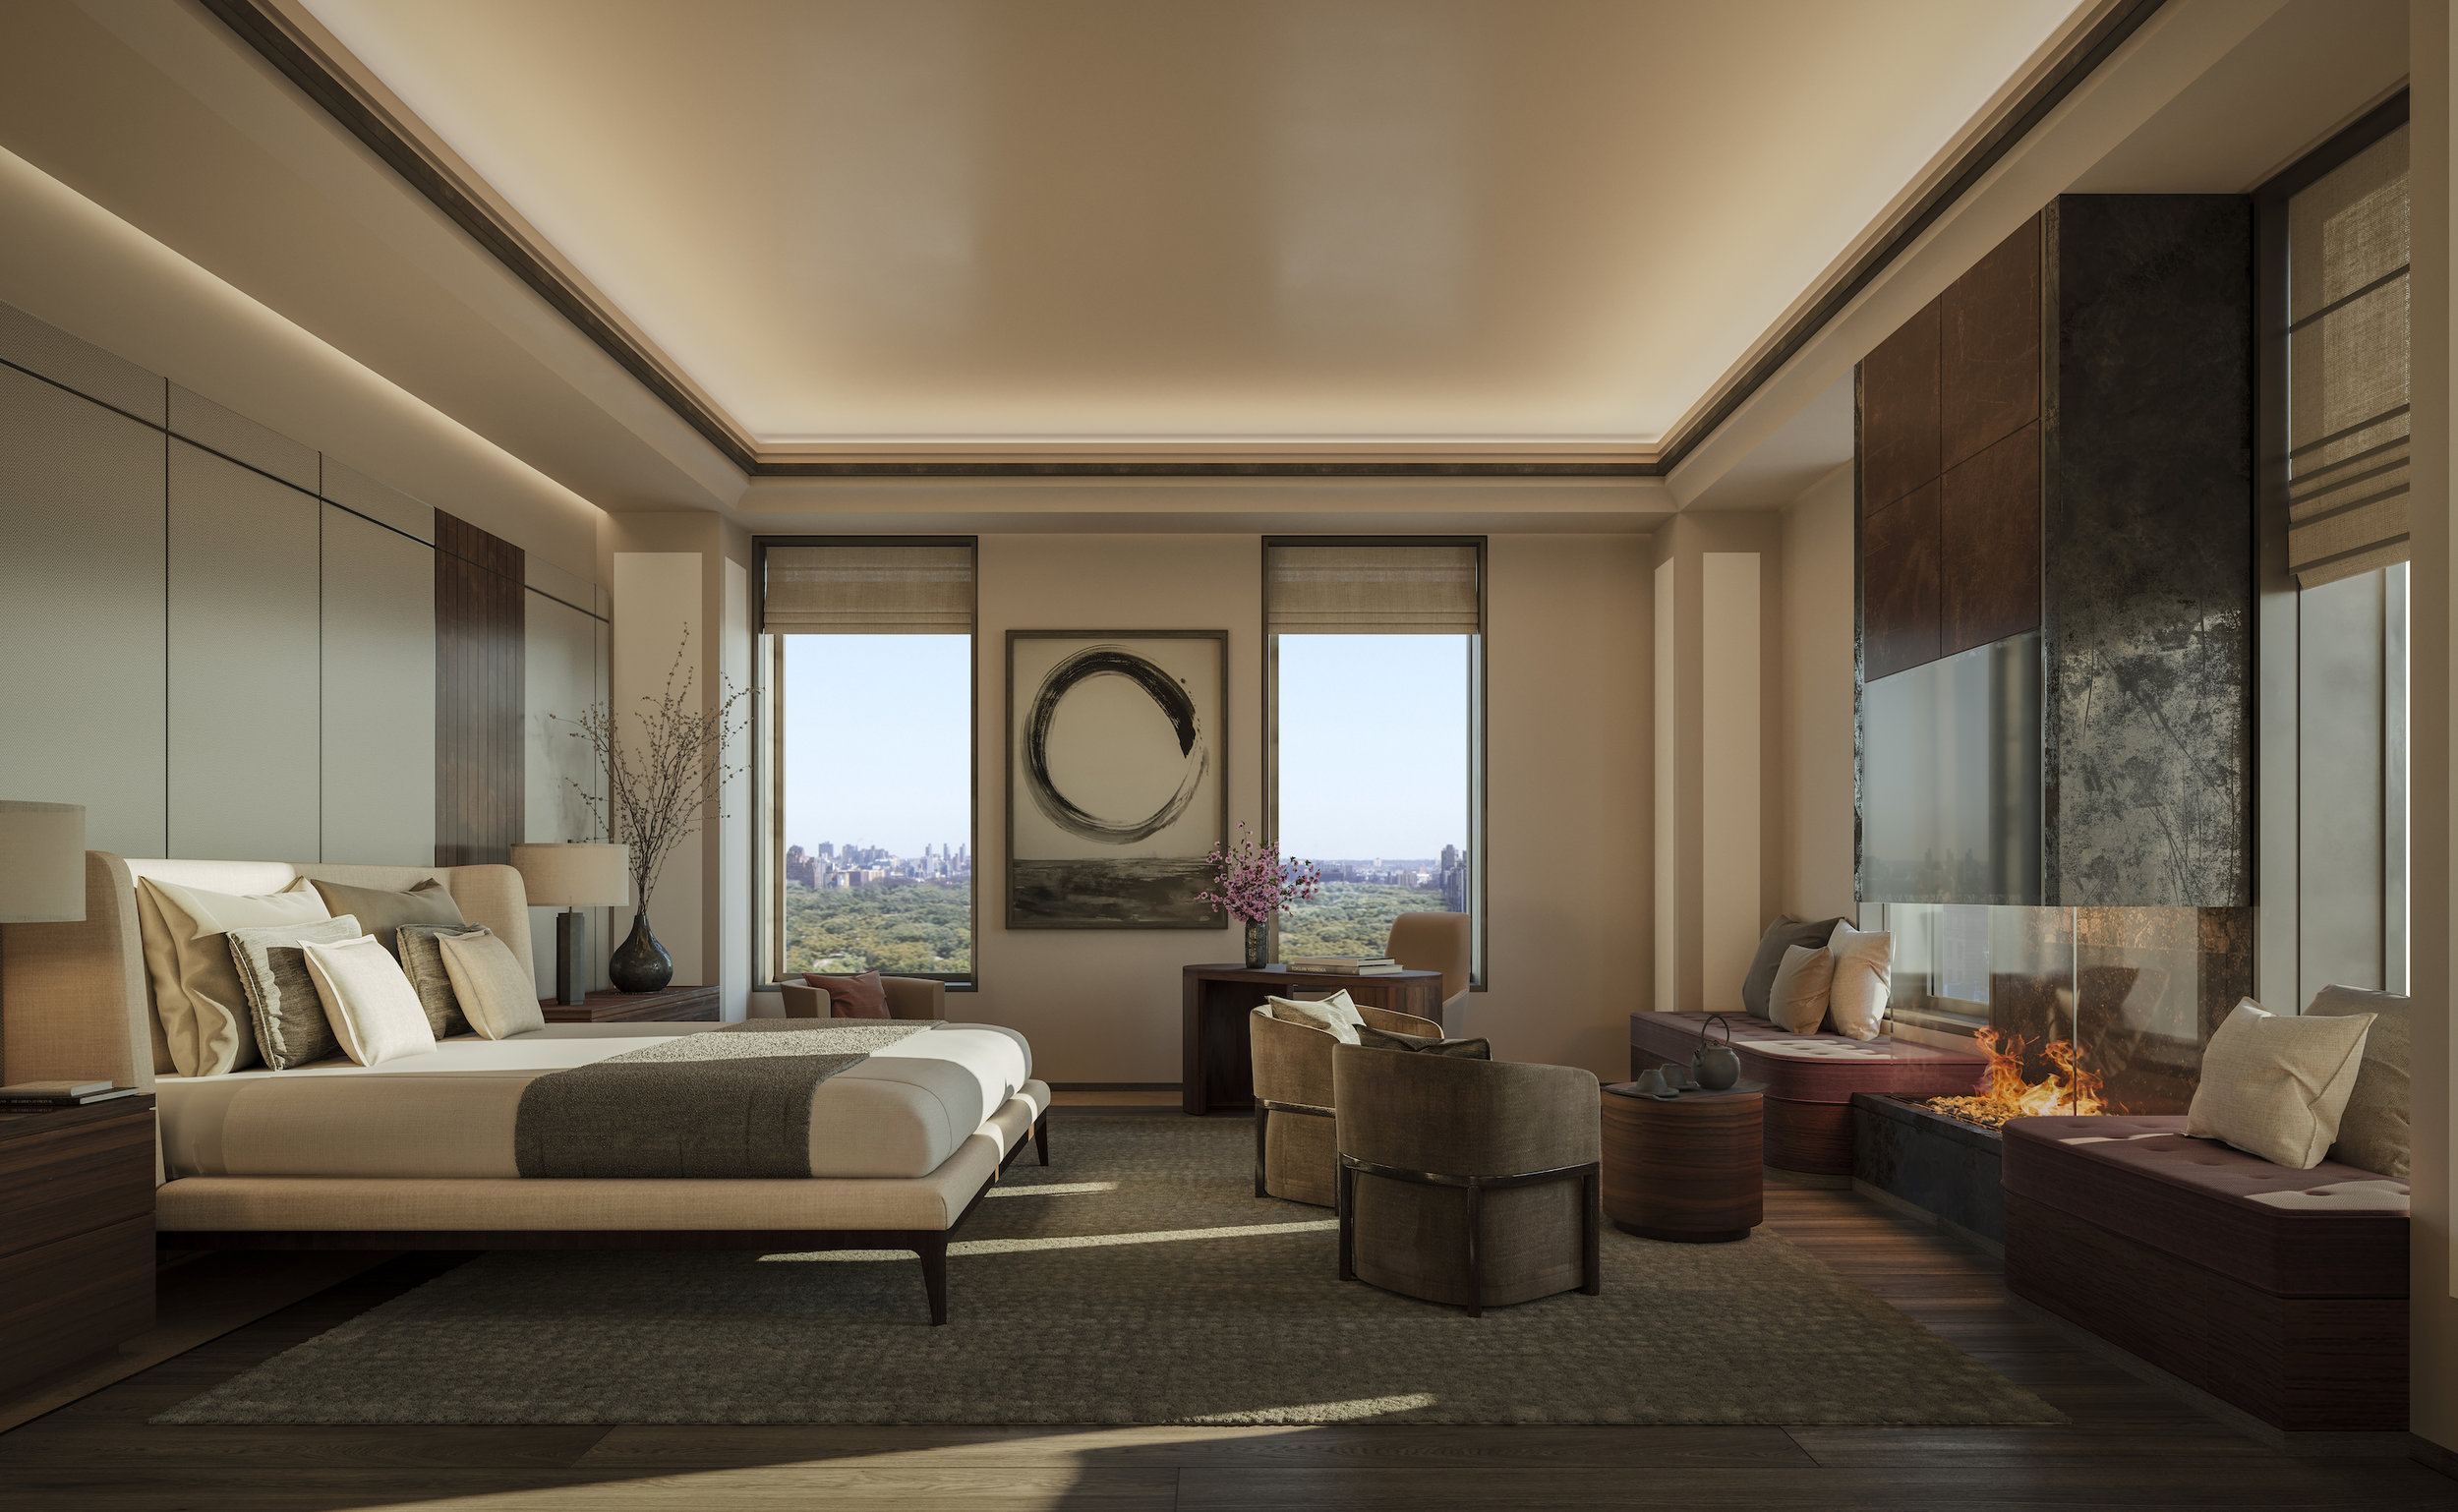 Aman Residences Master Bedroom.jpg